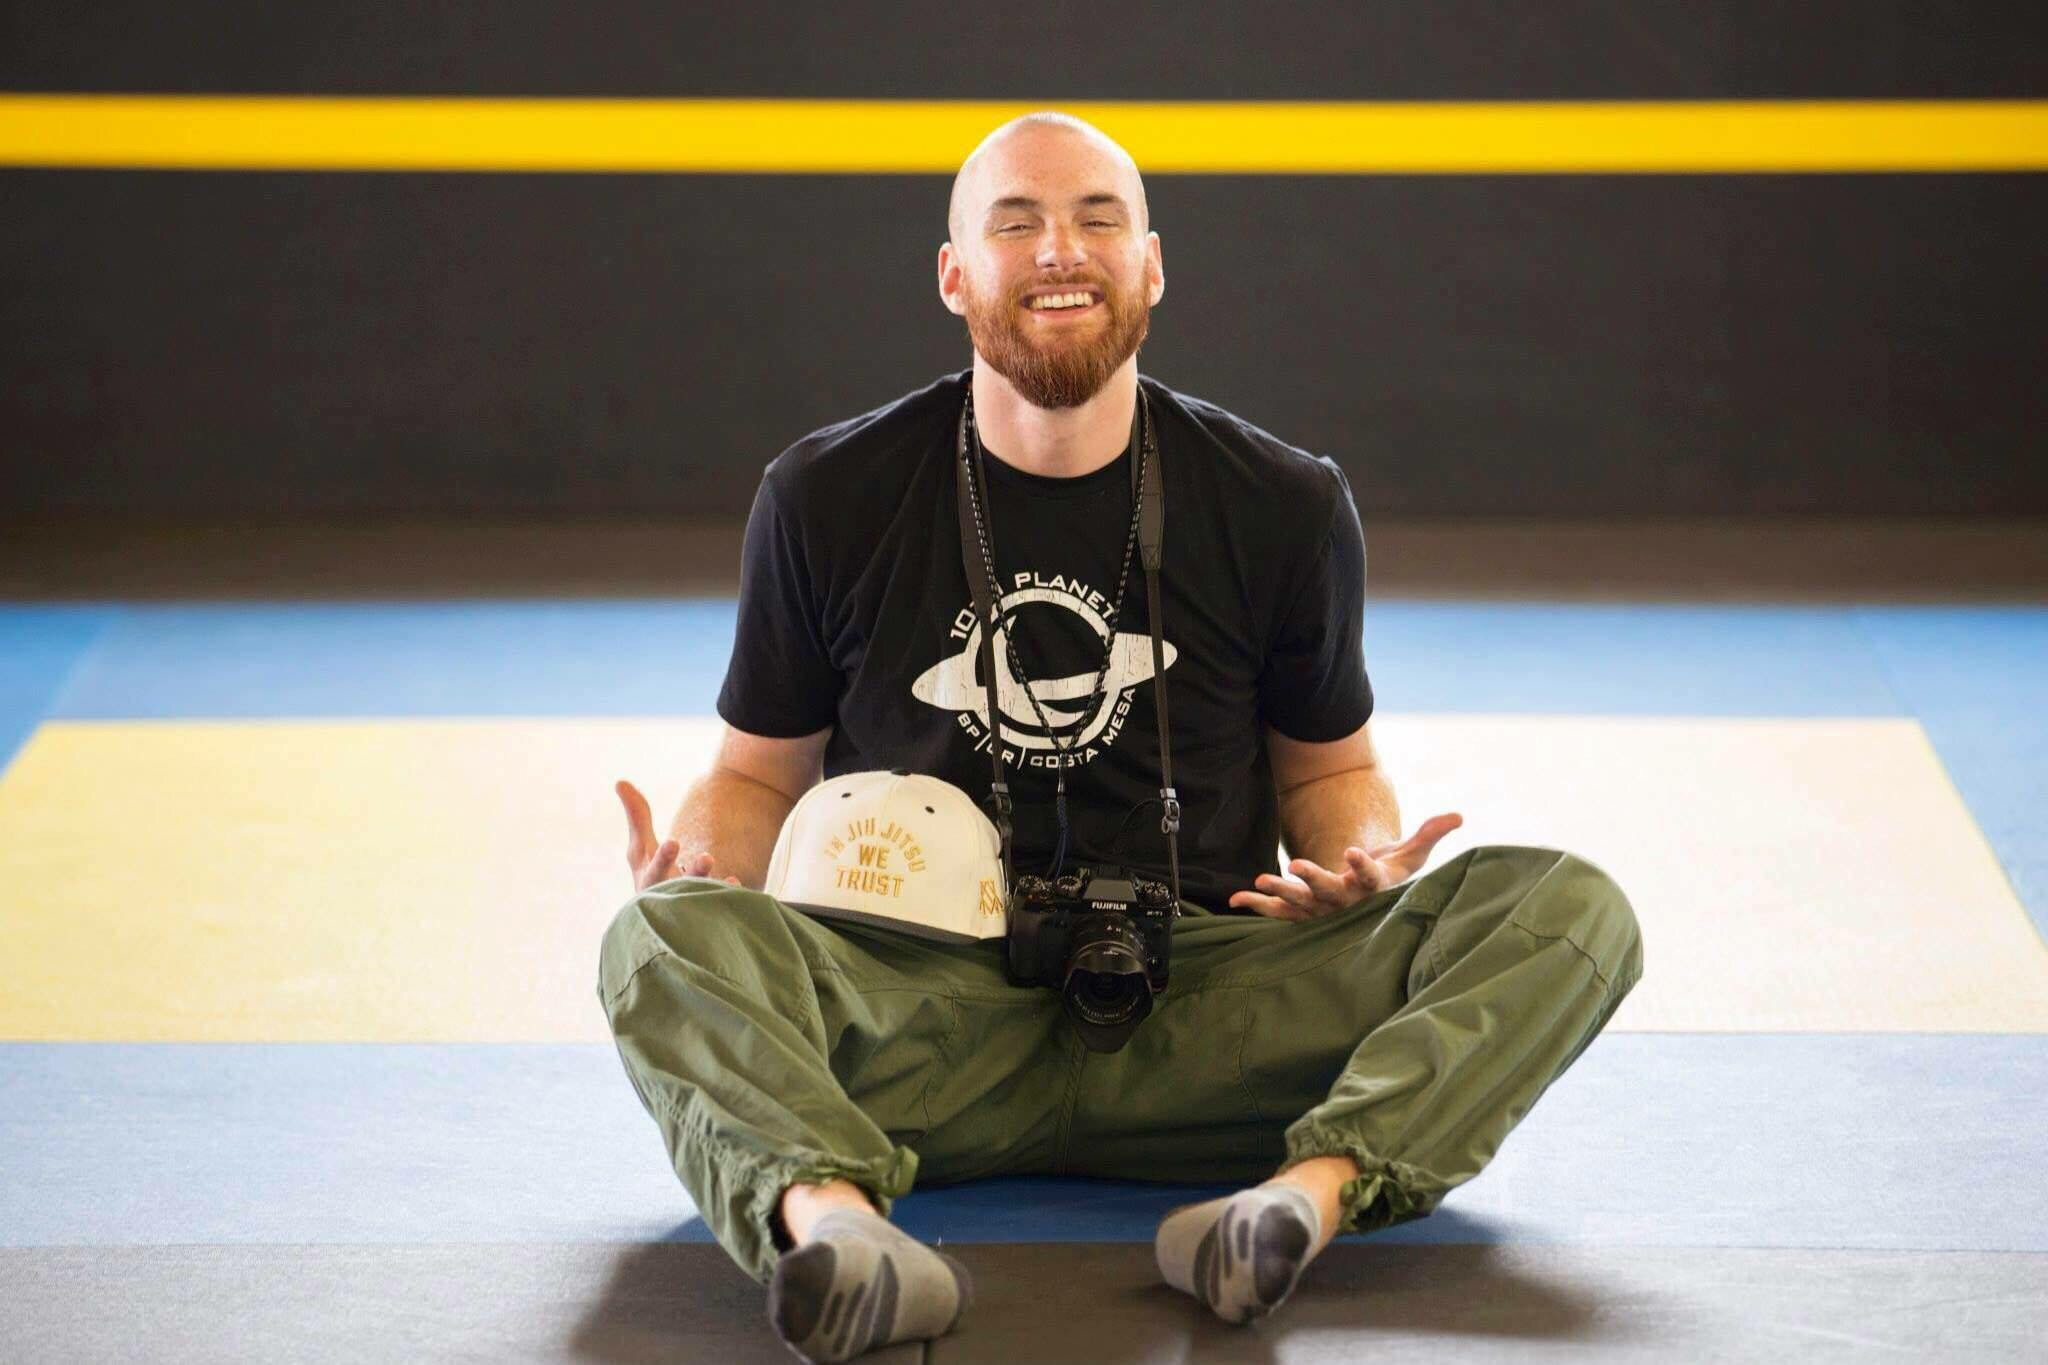 Jesse Bell working for Dream BJJ Tournaments